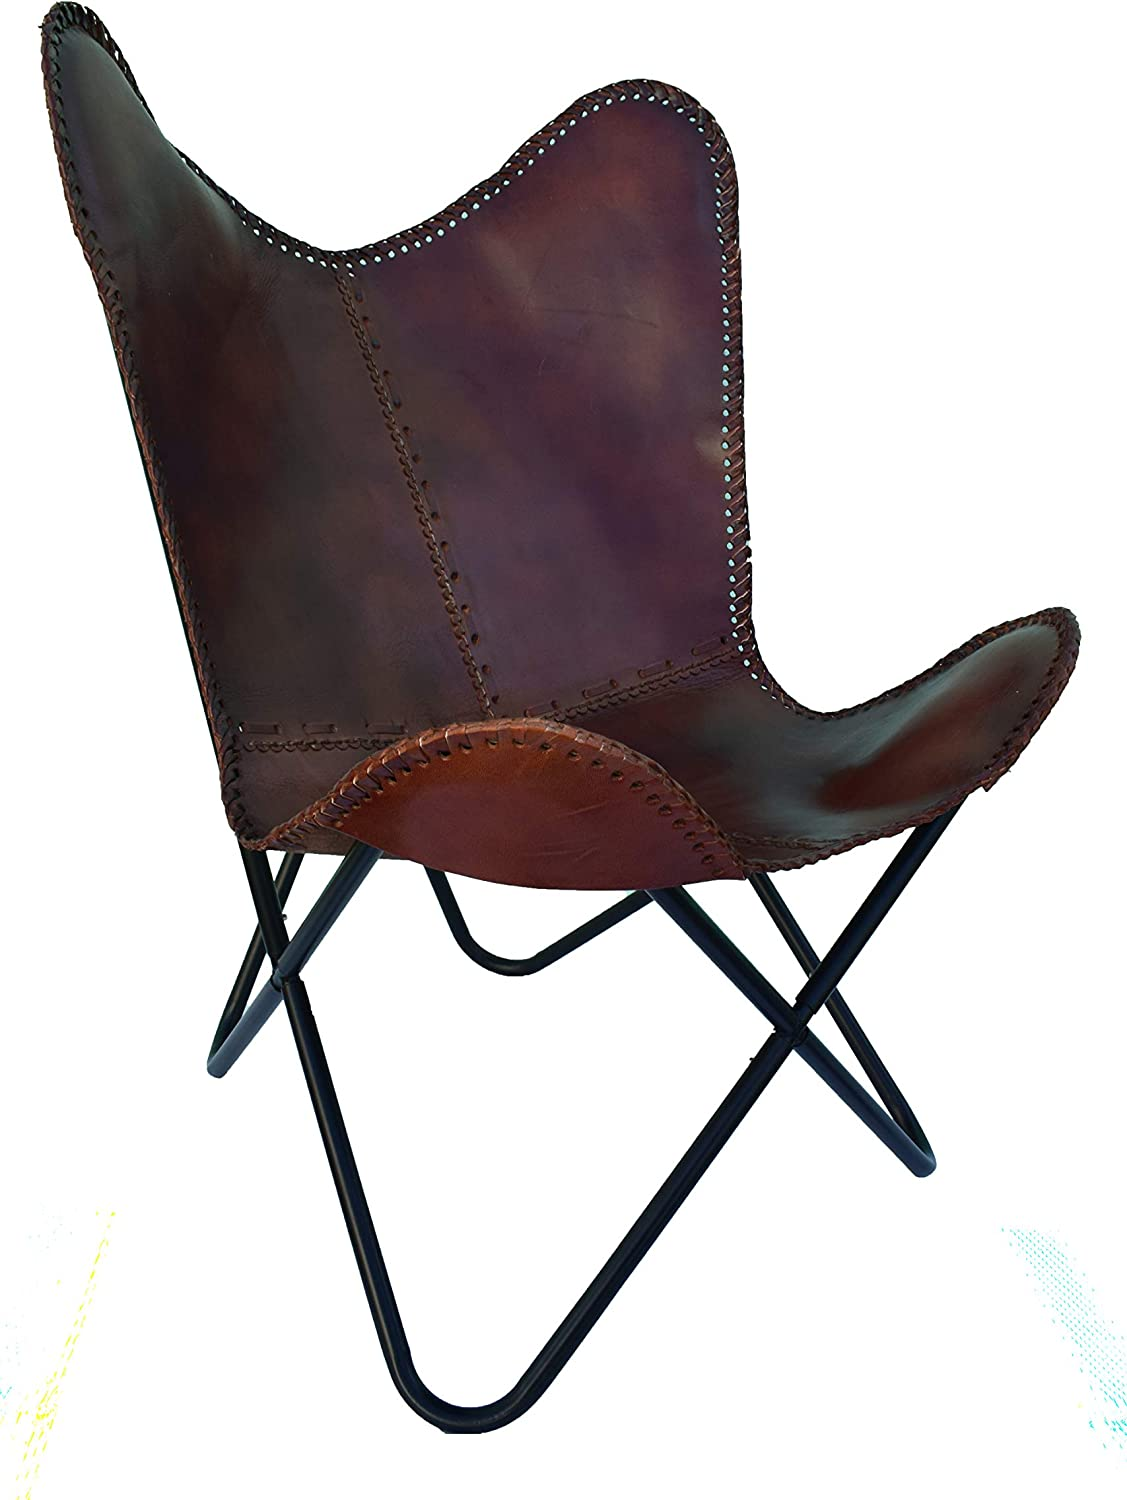 New Vintage Leather Butterfly Chair Home Decor Handmade Living Room Chair Retro Classic Rich Brown Cover